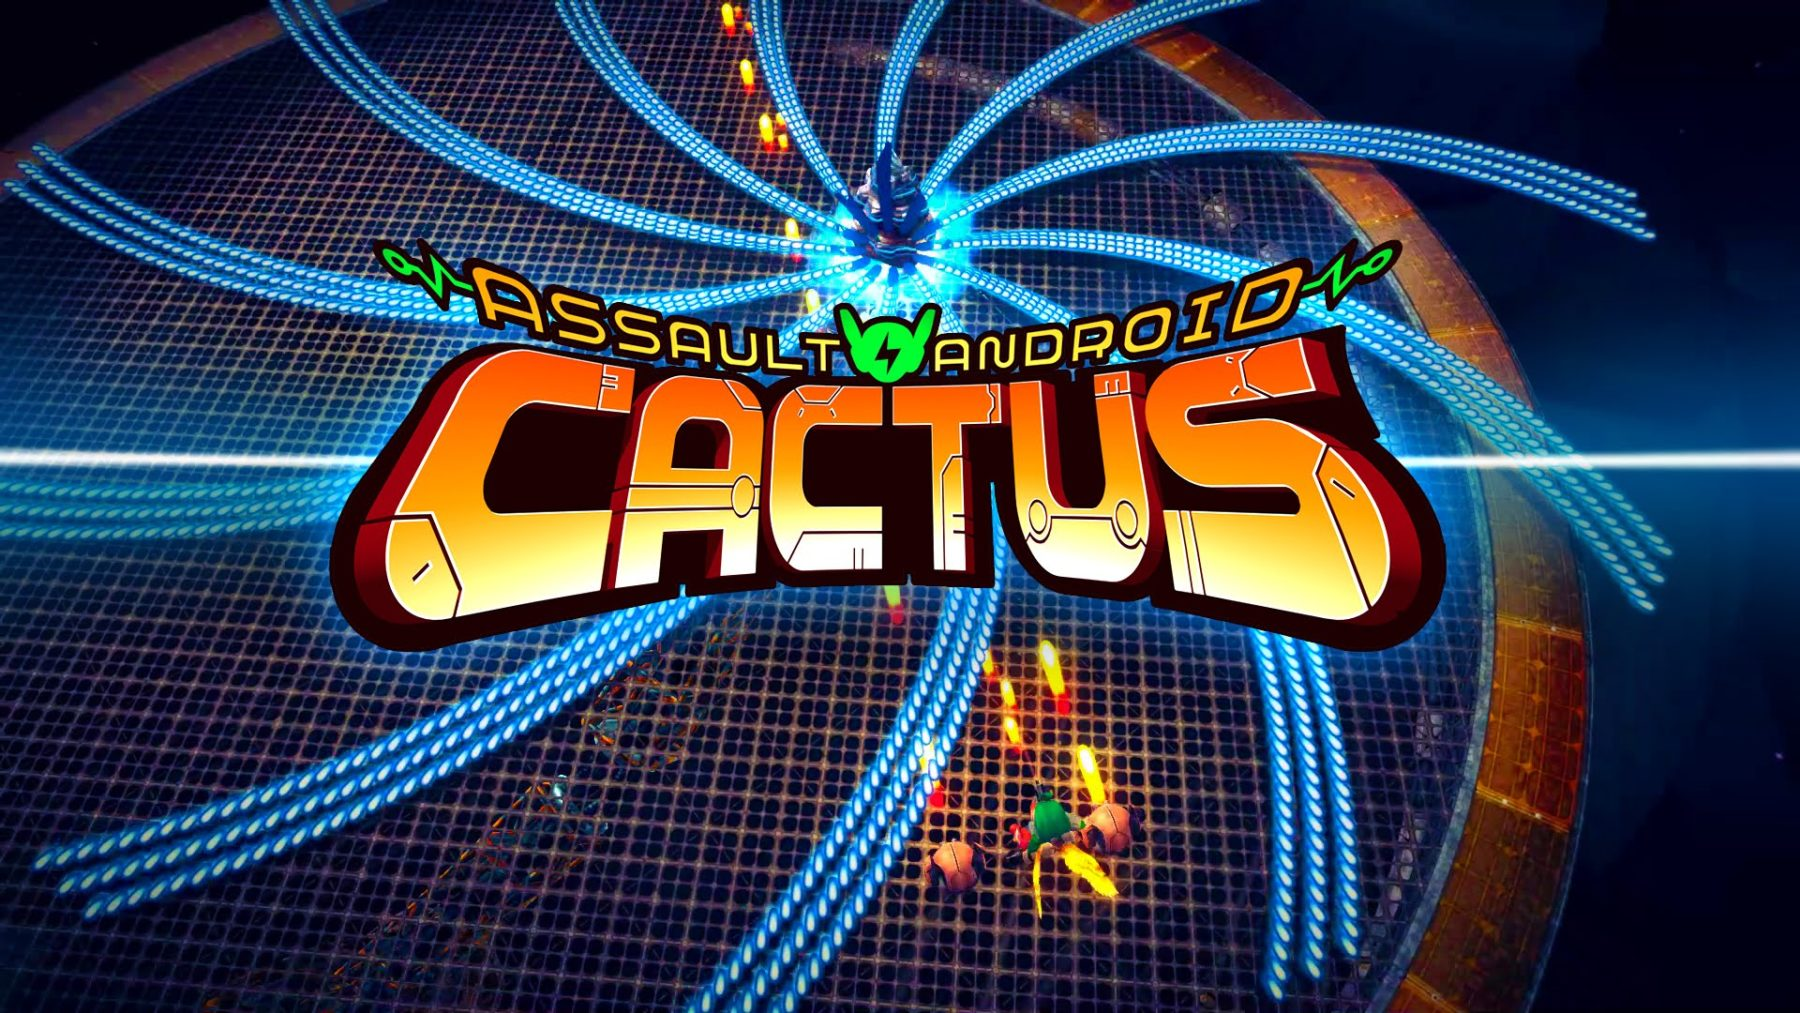 Twin stick shooter Assault Android Cactus coming to Xbox One and